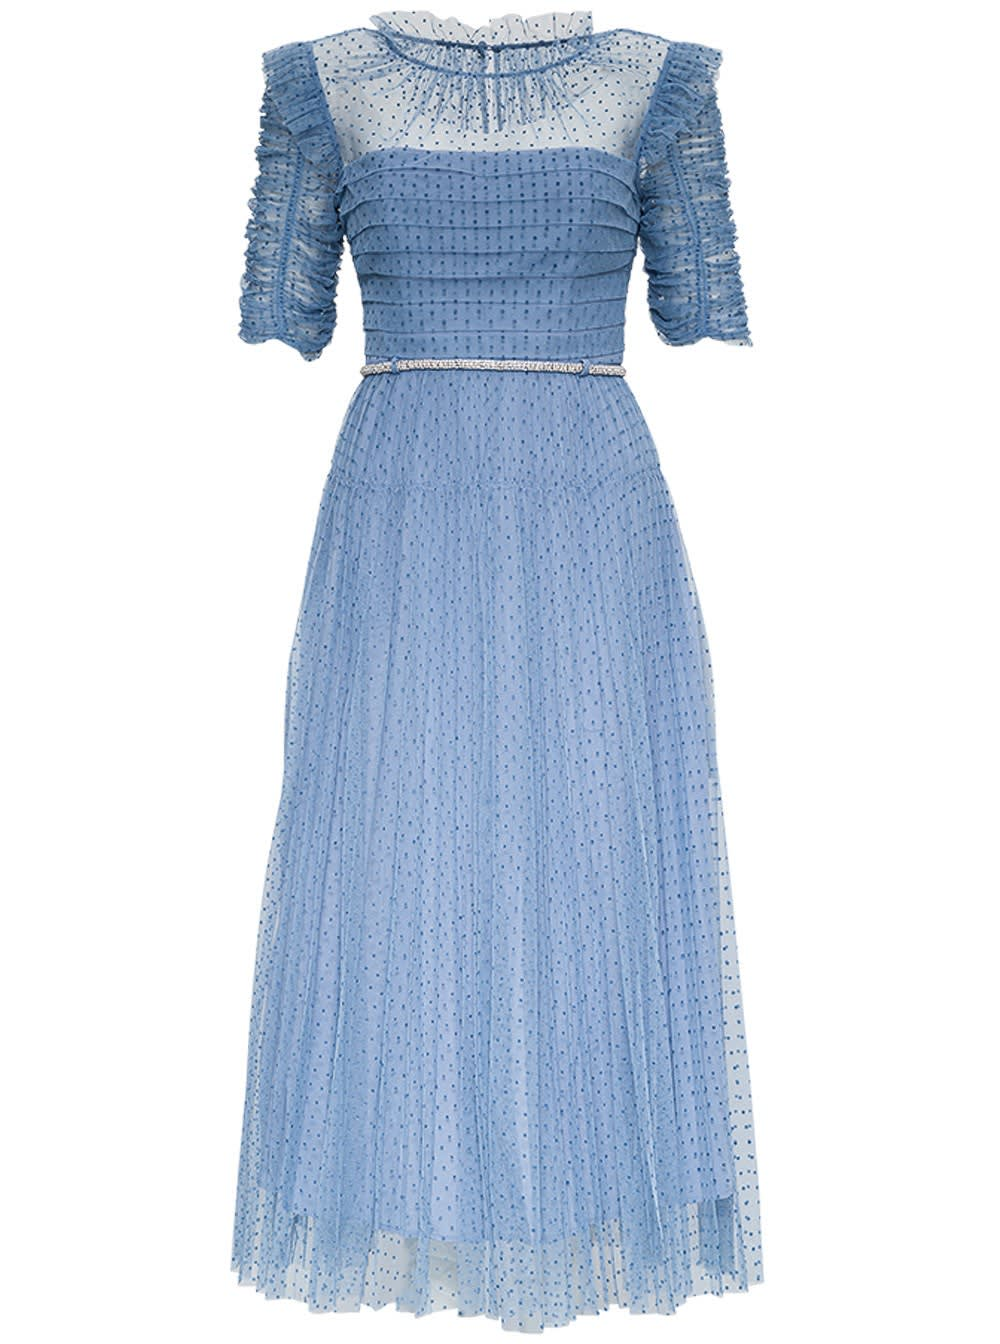 Self-Portrait LONG DRESS IN LIGHT BLUE POLKA DOTTULLE